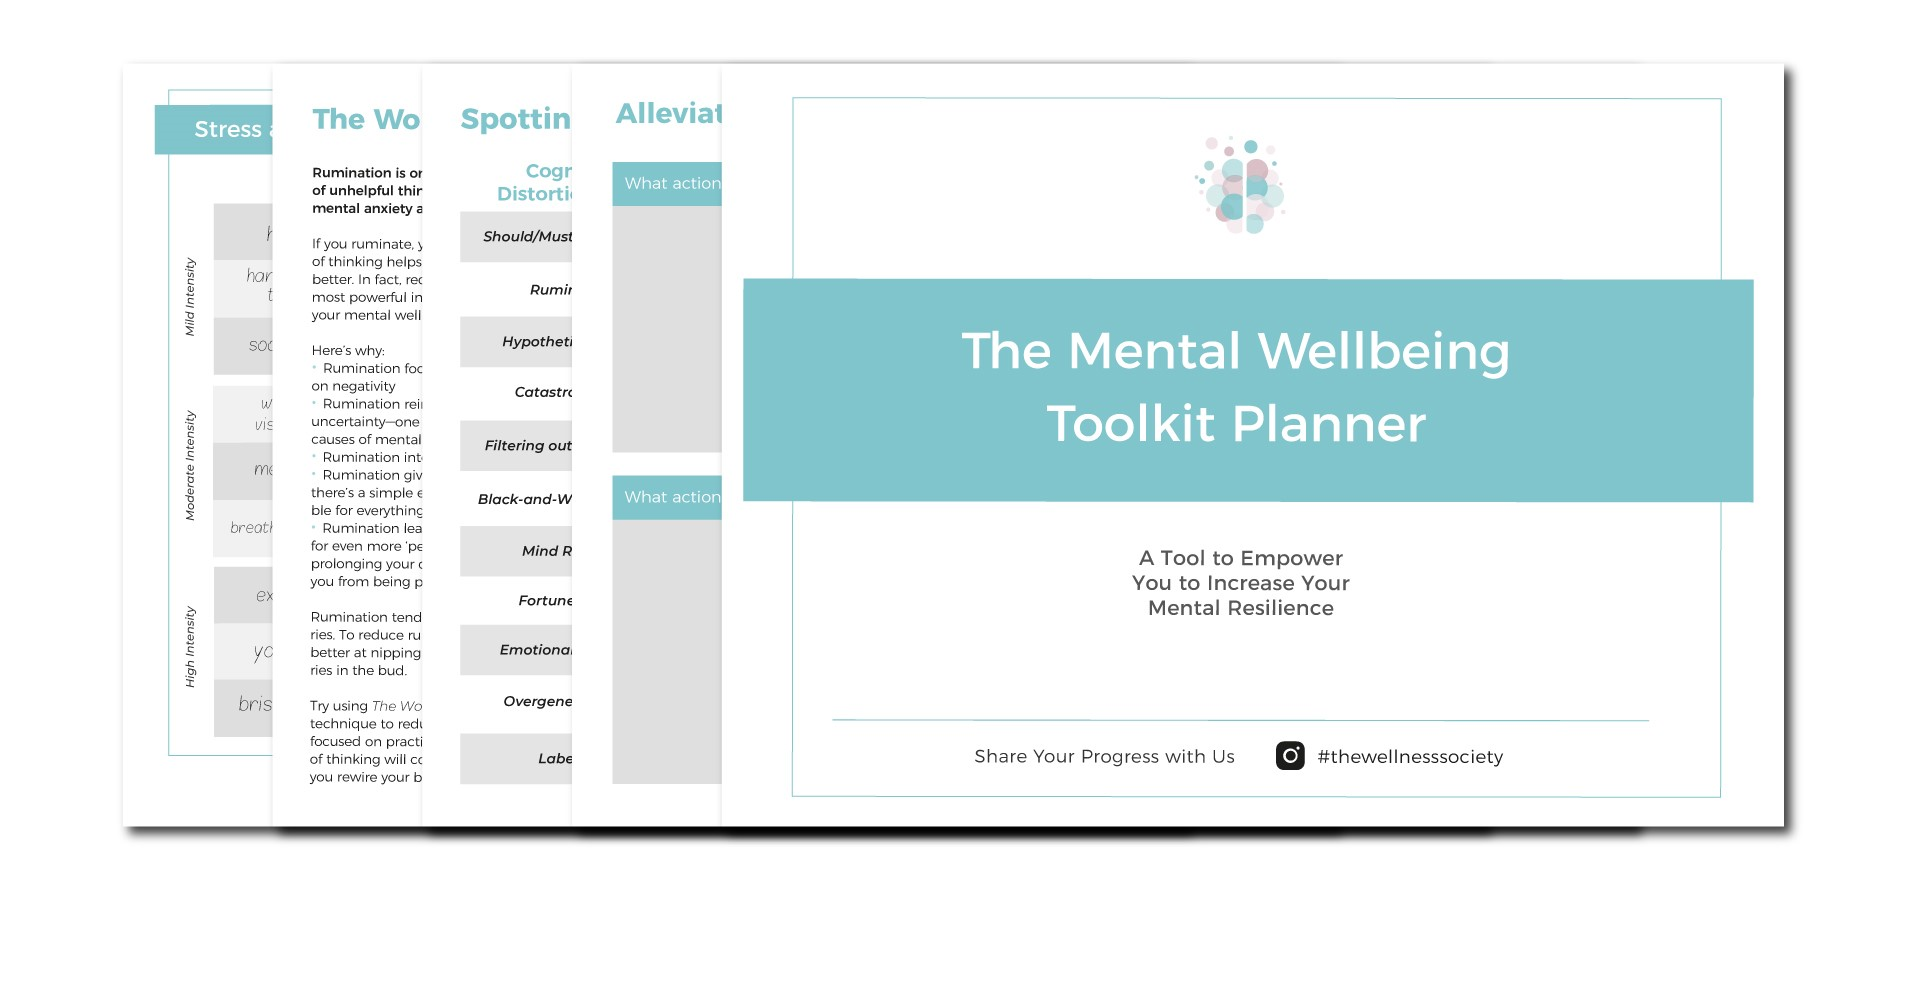 Mental Wellbeing Toolkit Planner